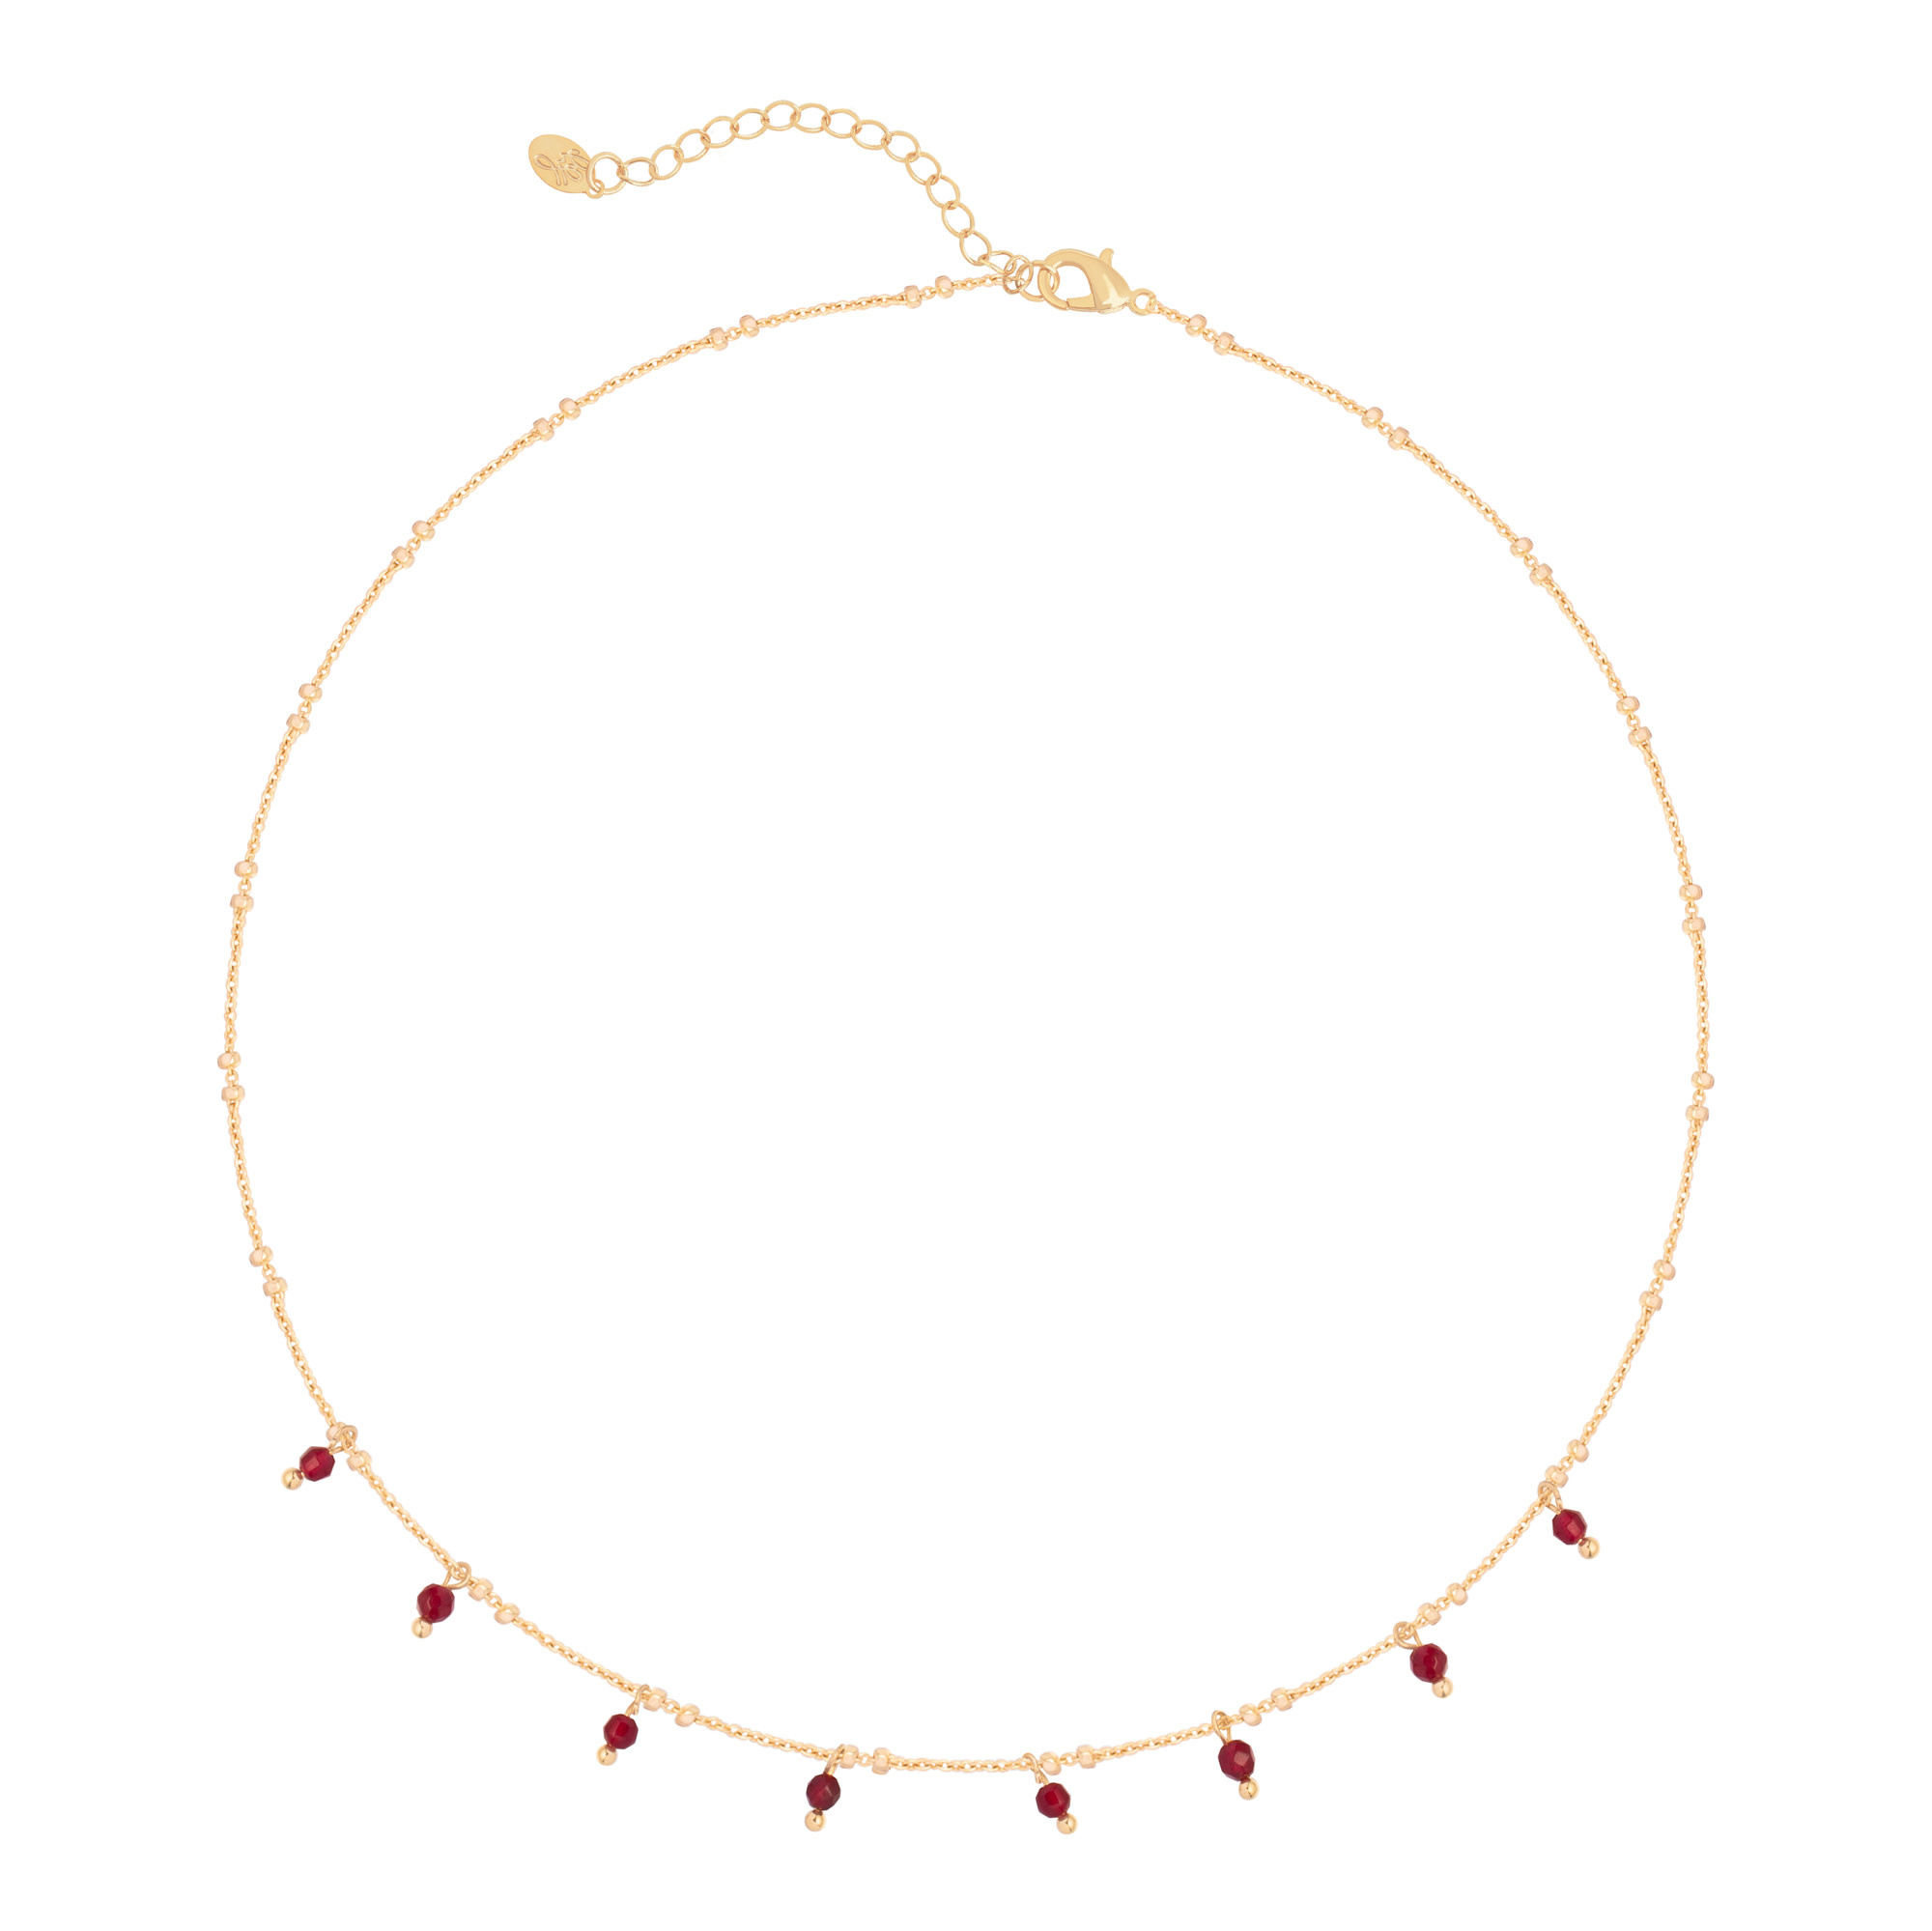 With love Necklace heartbeats - red gold